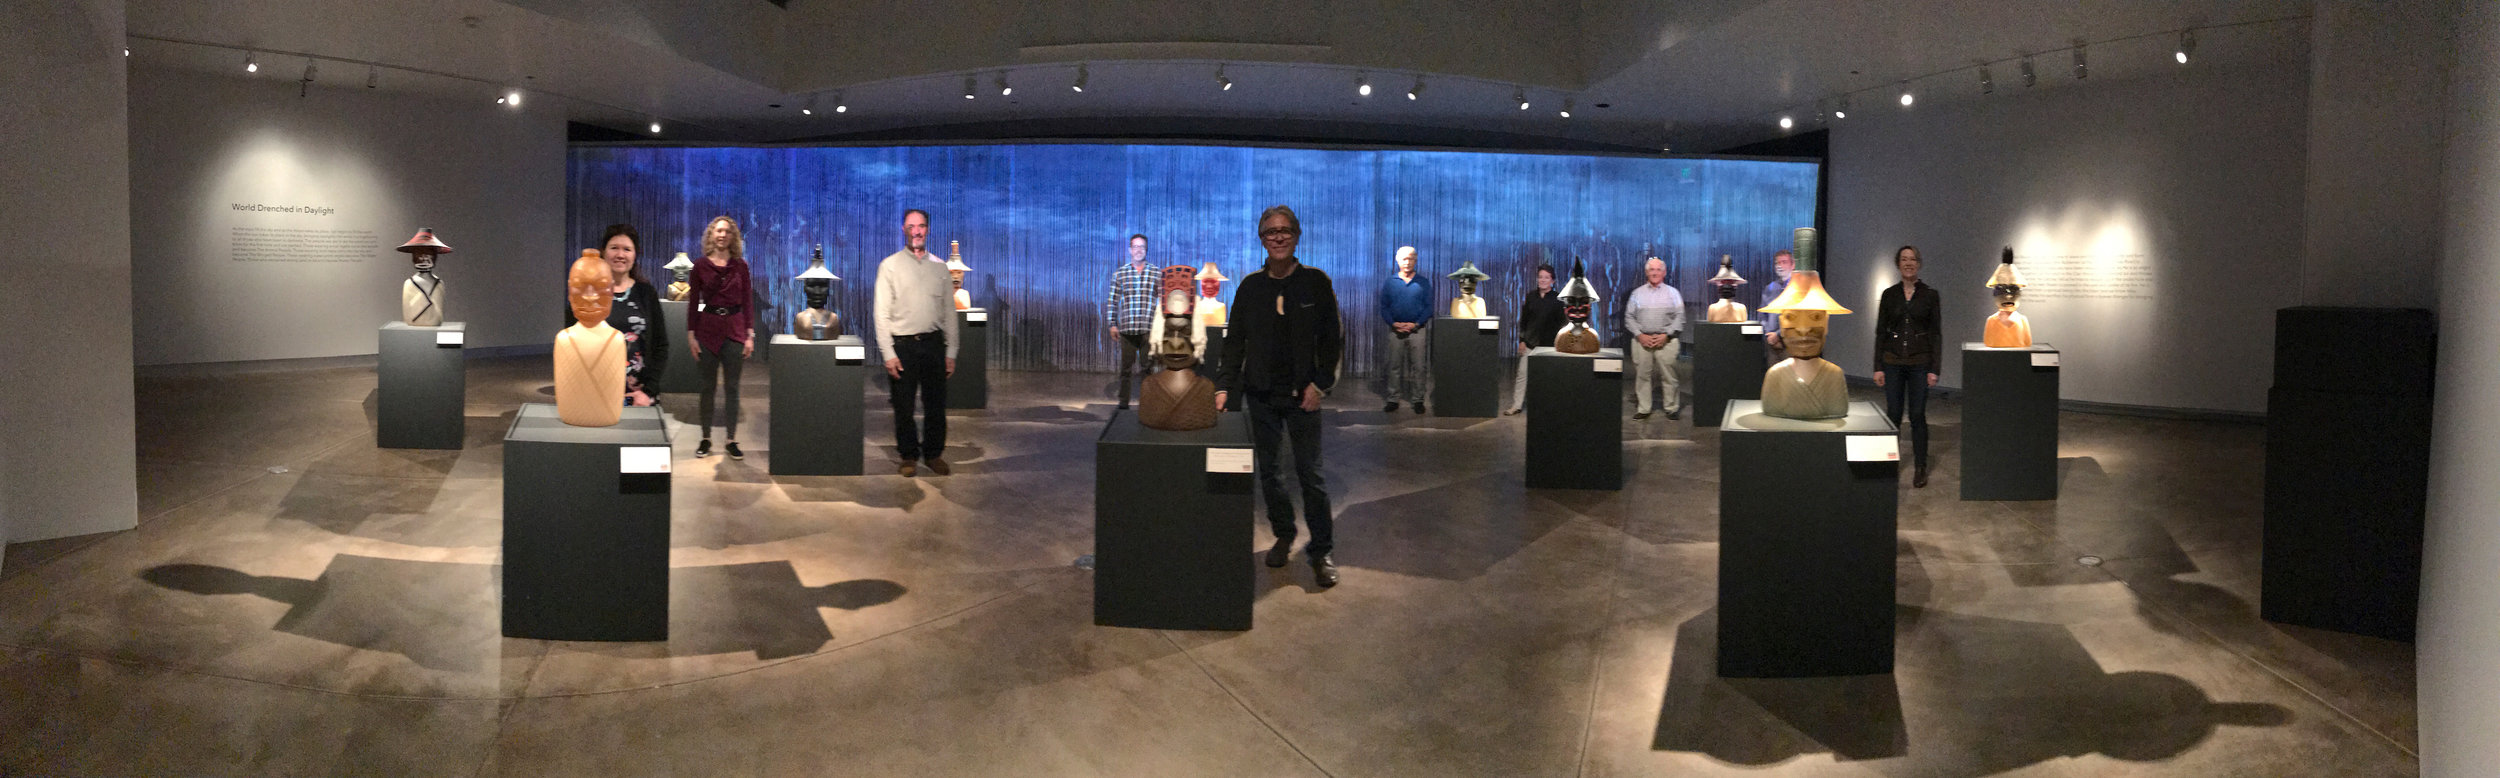 Preston at his exhibition with our group.